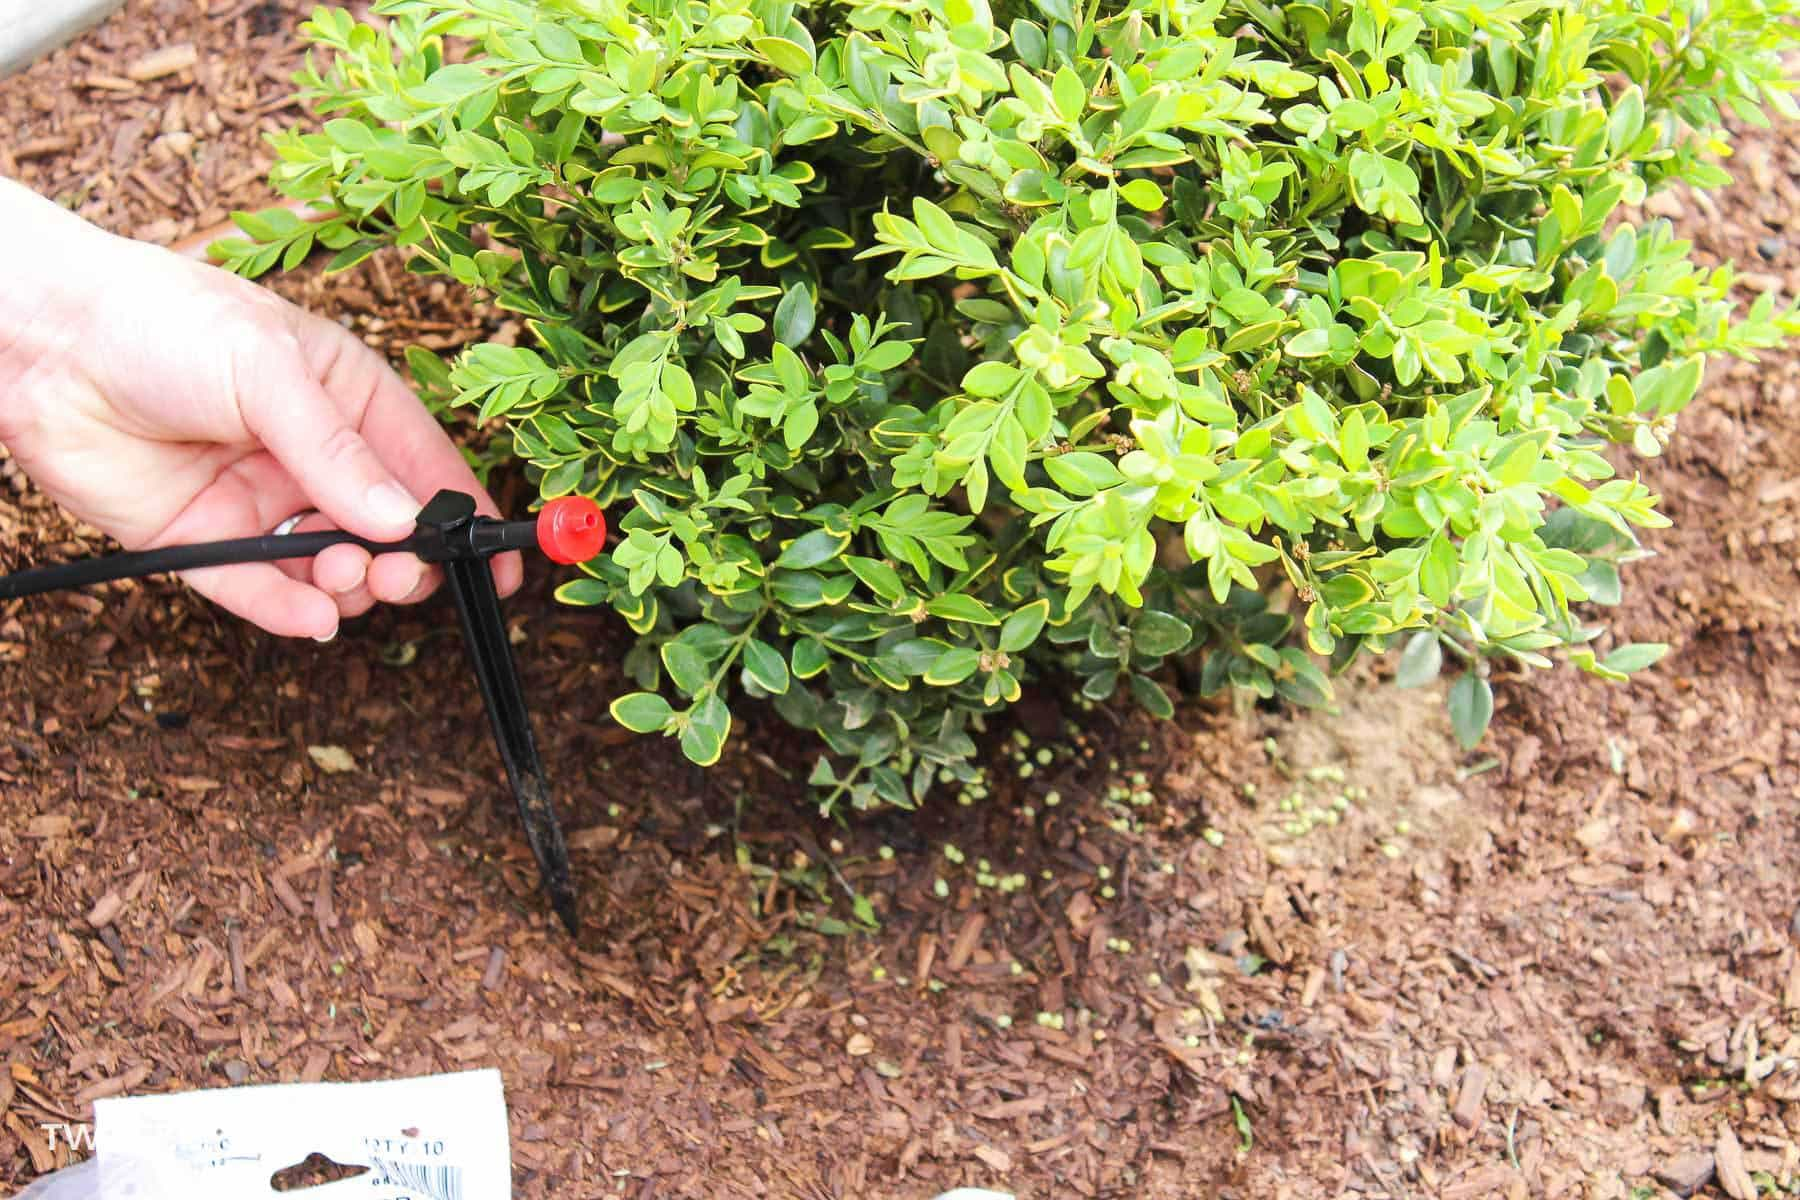 install drippers for drip irrigation system